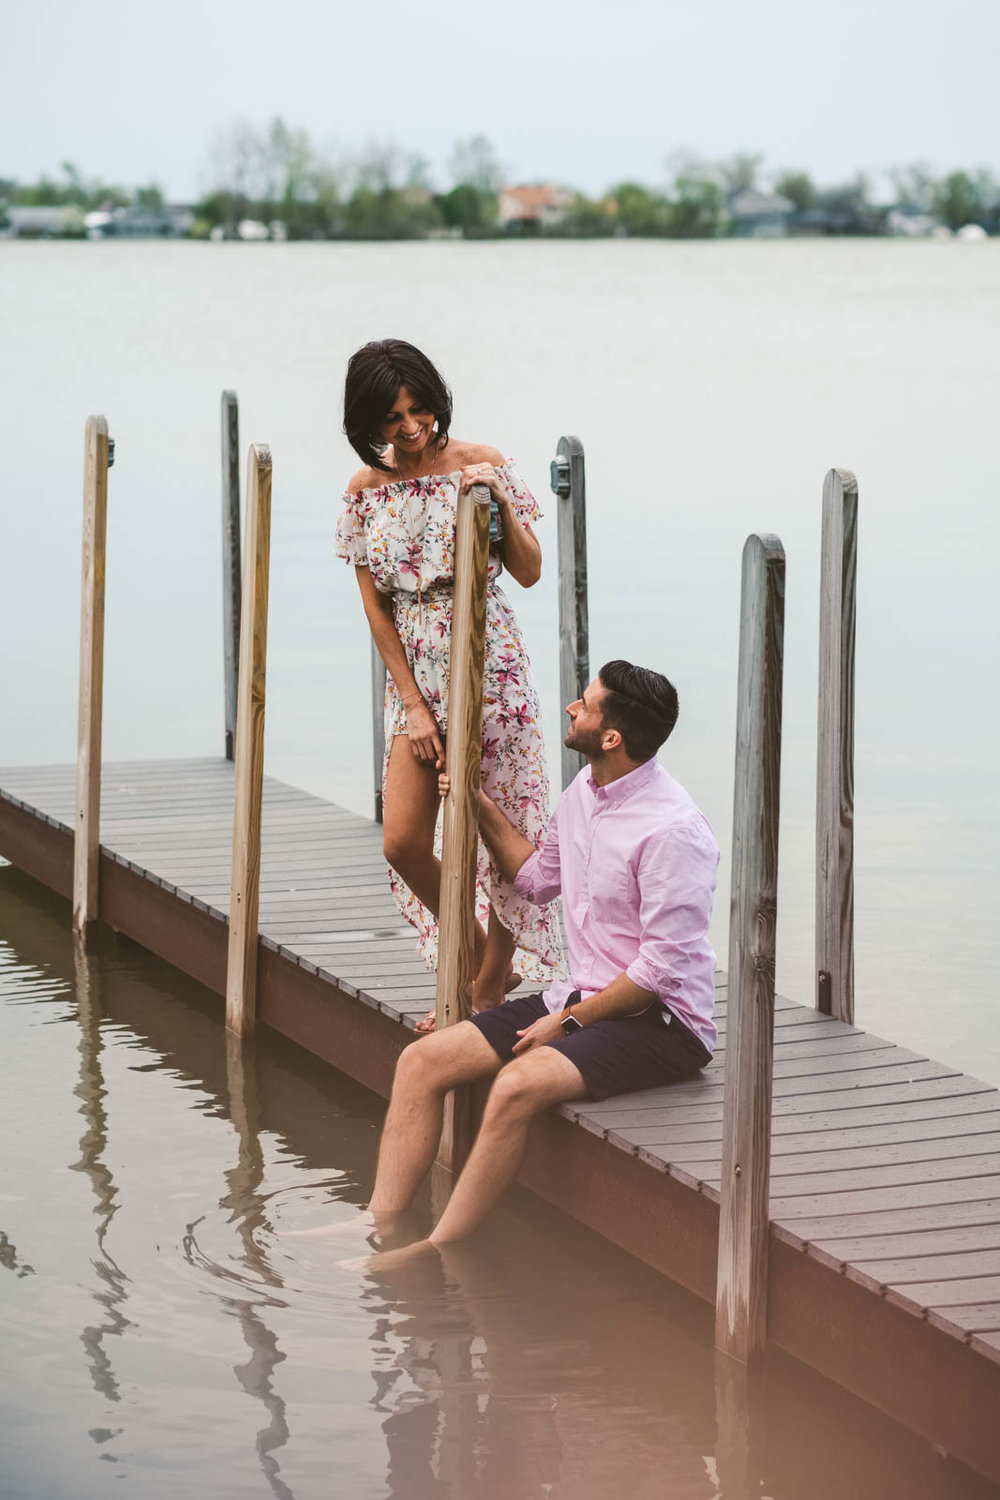 Marblehead Ohio Engagement Session on Boat Dock